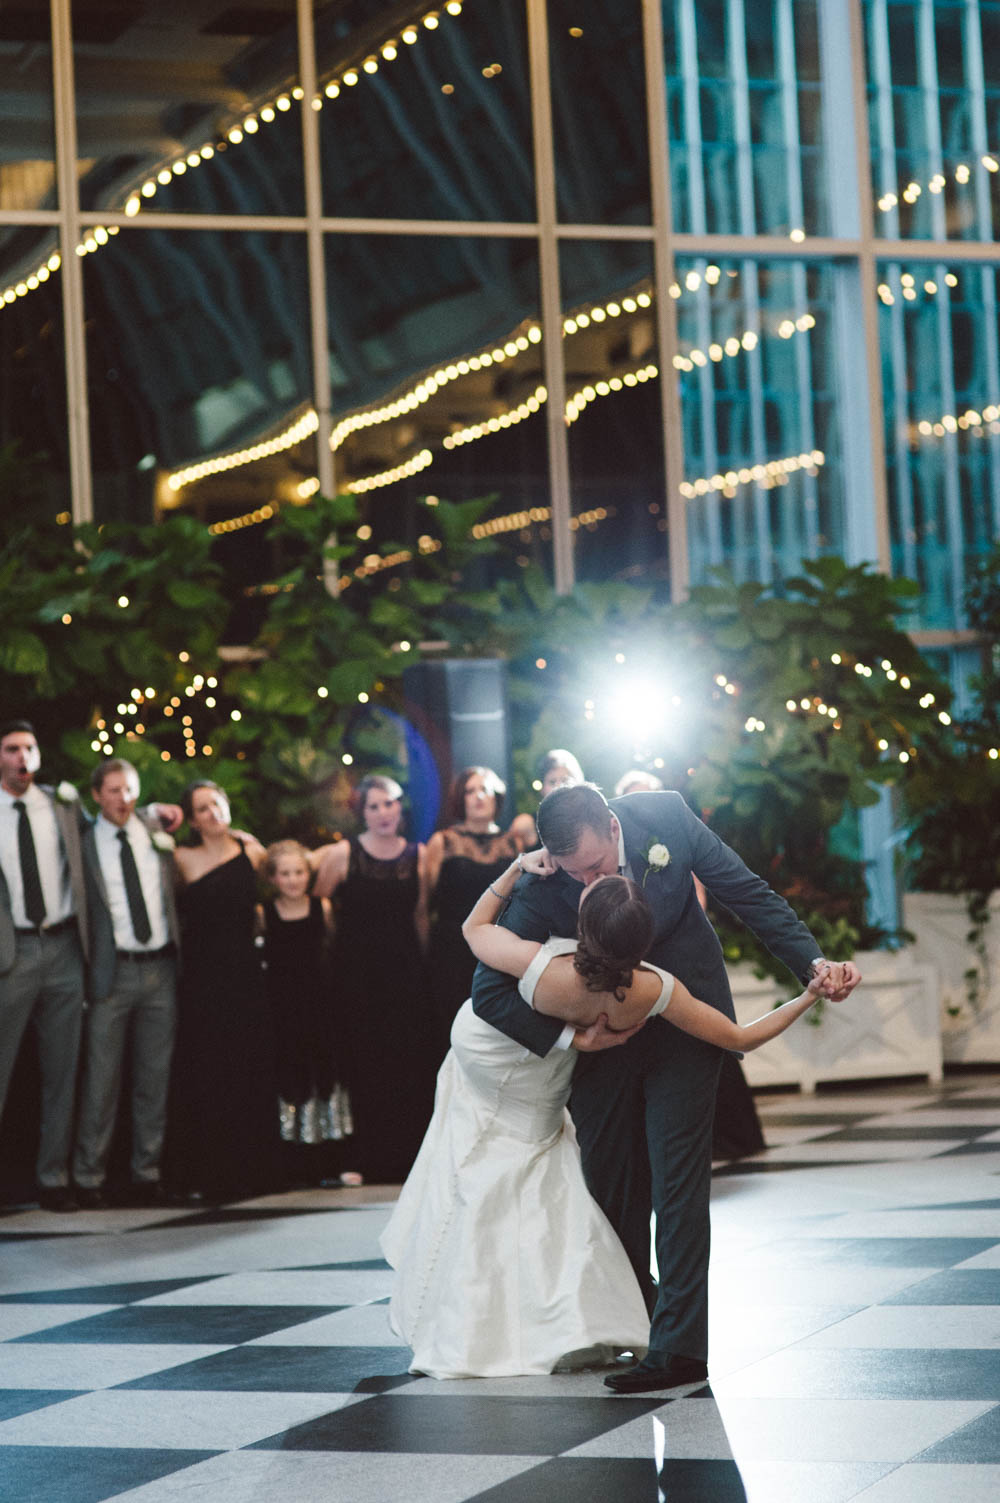 wintergarden-wedding-pittsburgh-123.jpg